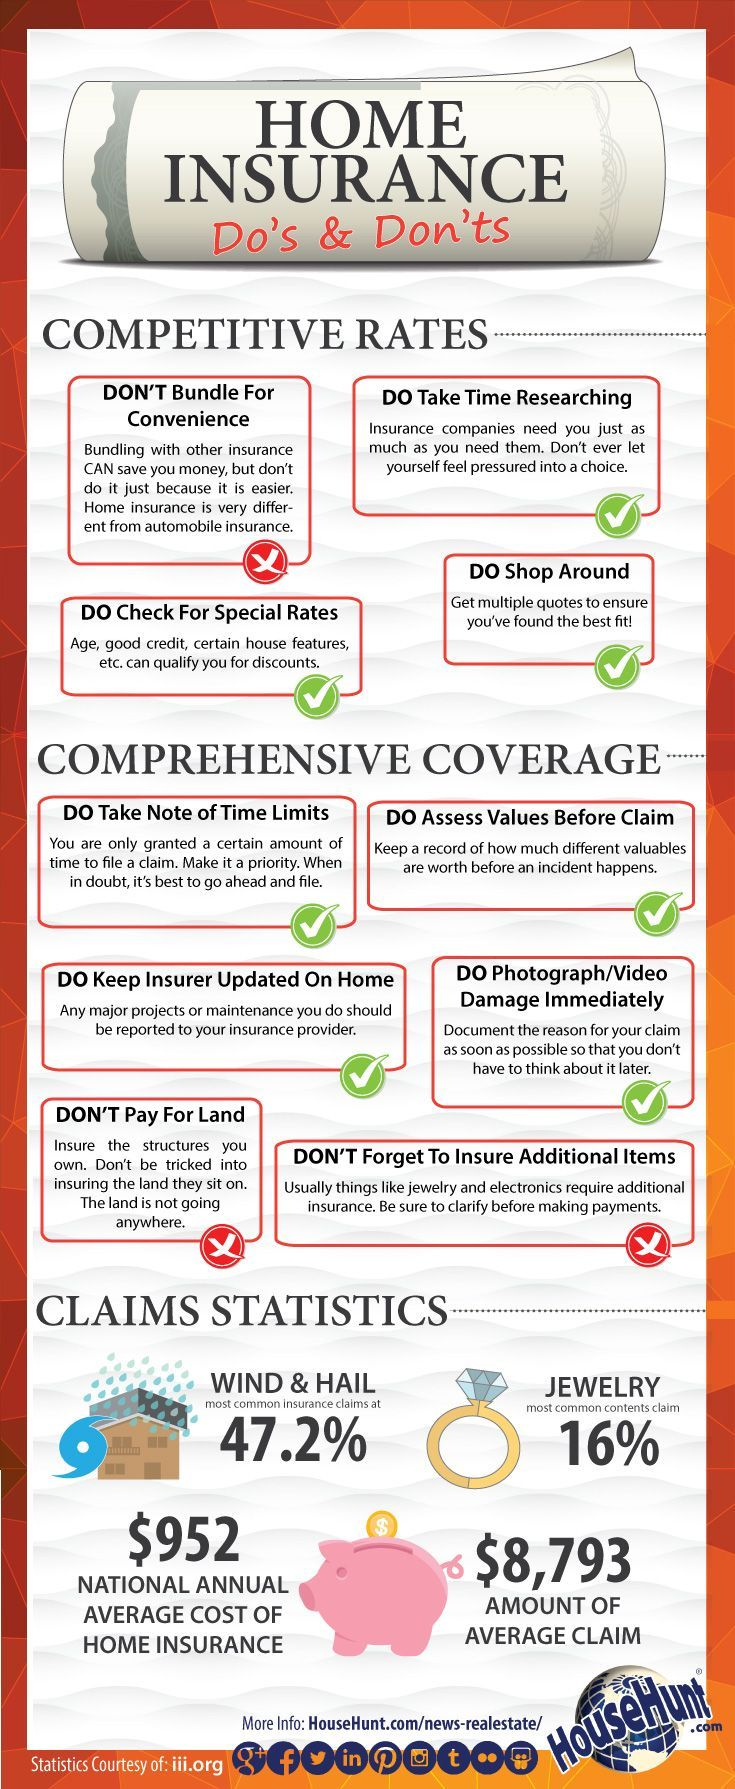 Homeowners Insurance Quote Fascinating 19 Best Home Insurance Images On Pinterest  Home Insurance Real . Inspiration